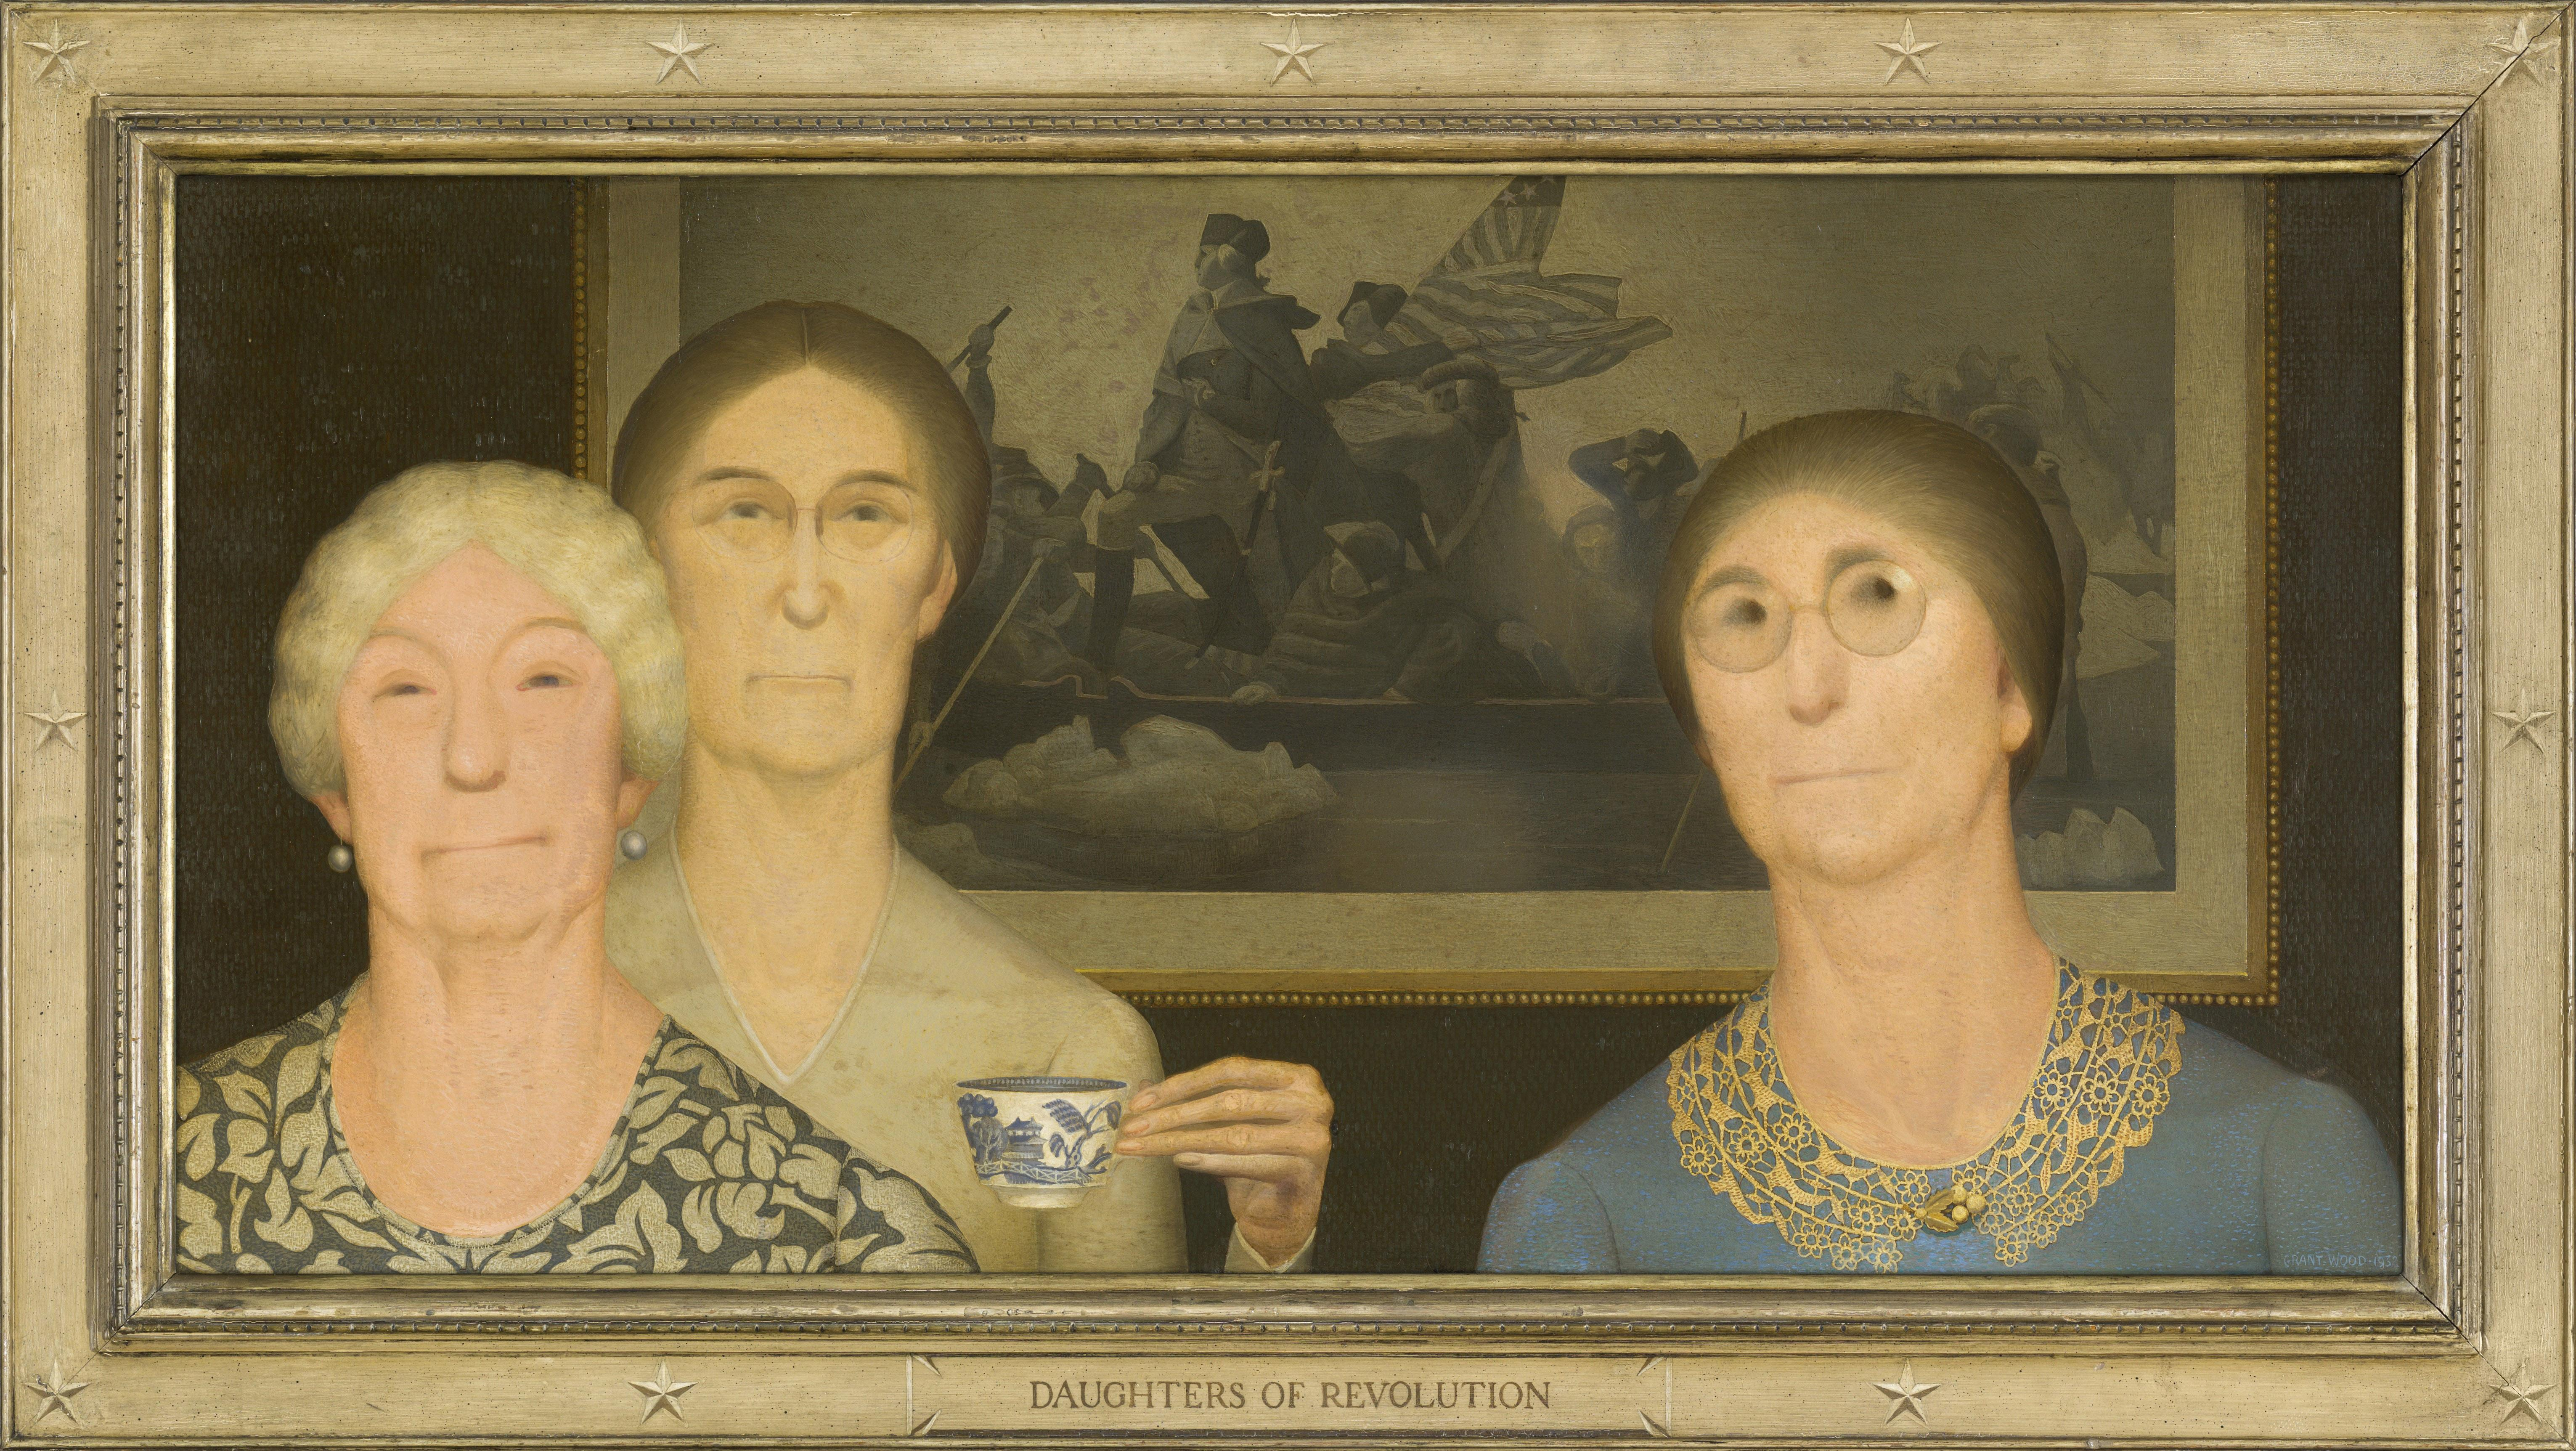 Wood took aim at the Daughters of the American Revolution